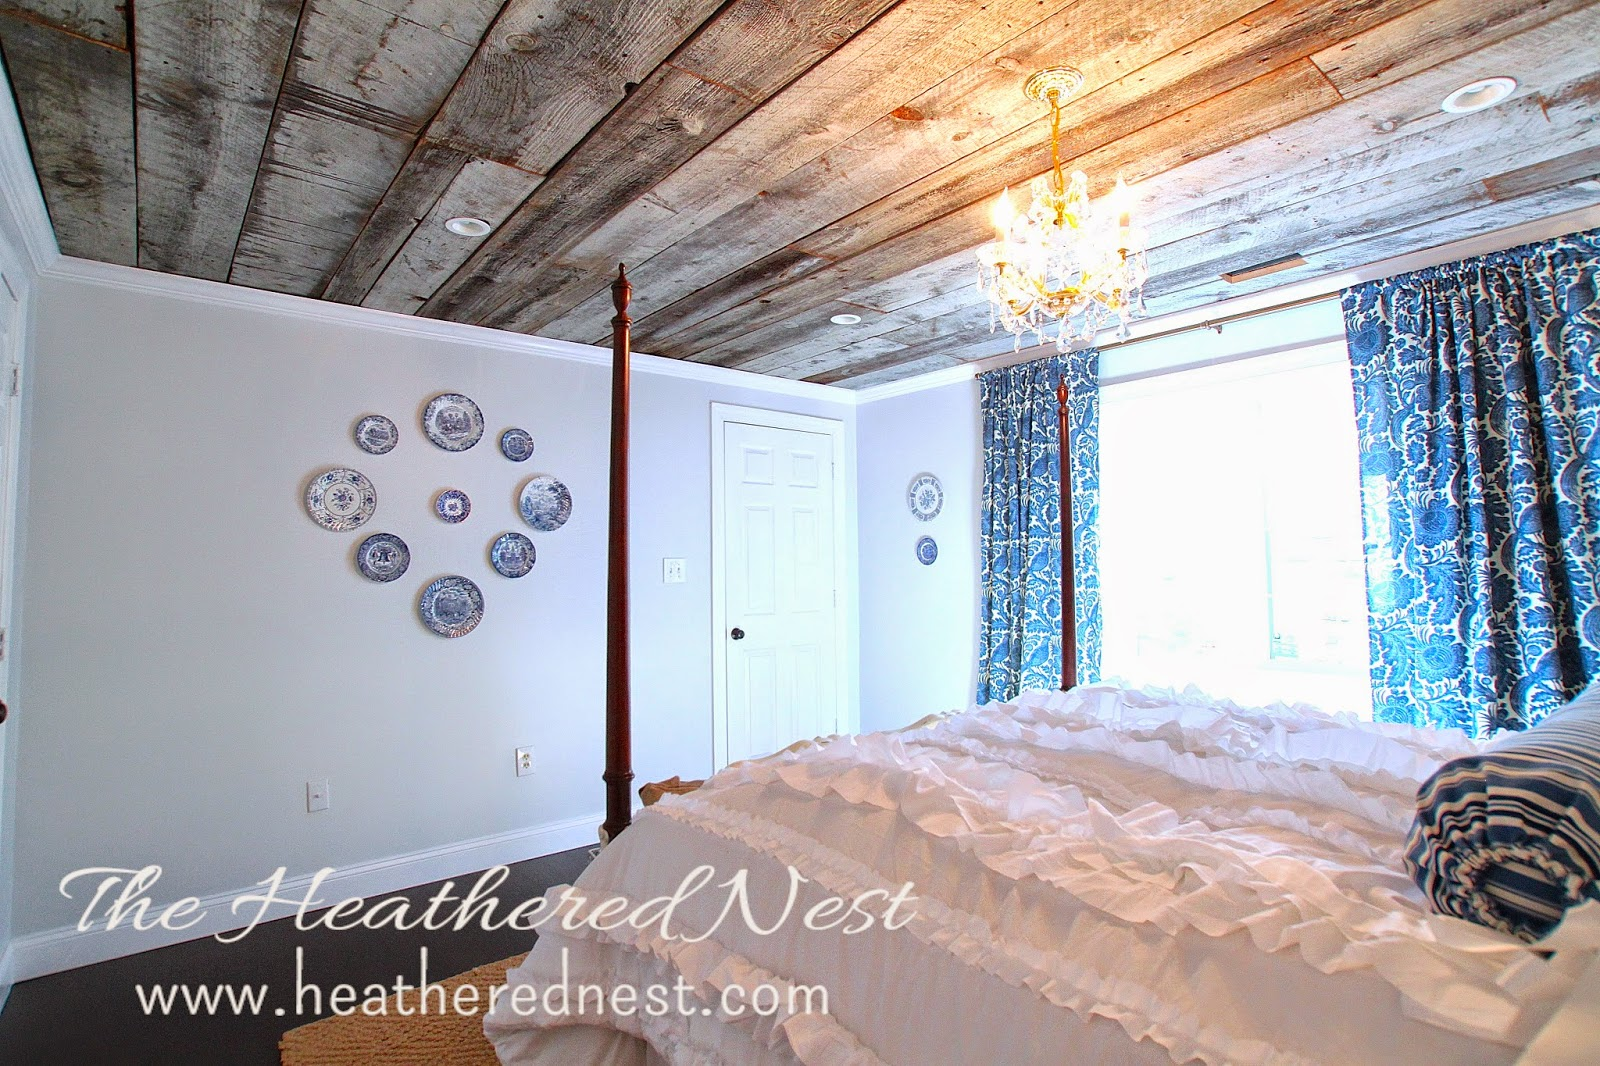 heathered nest guest room, barnboard ceiling, be our guest, ruffle duvet, ruffle comforter